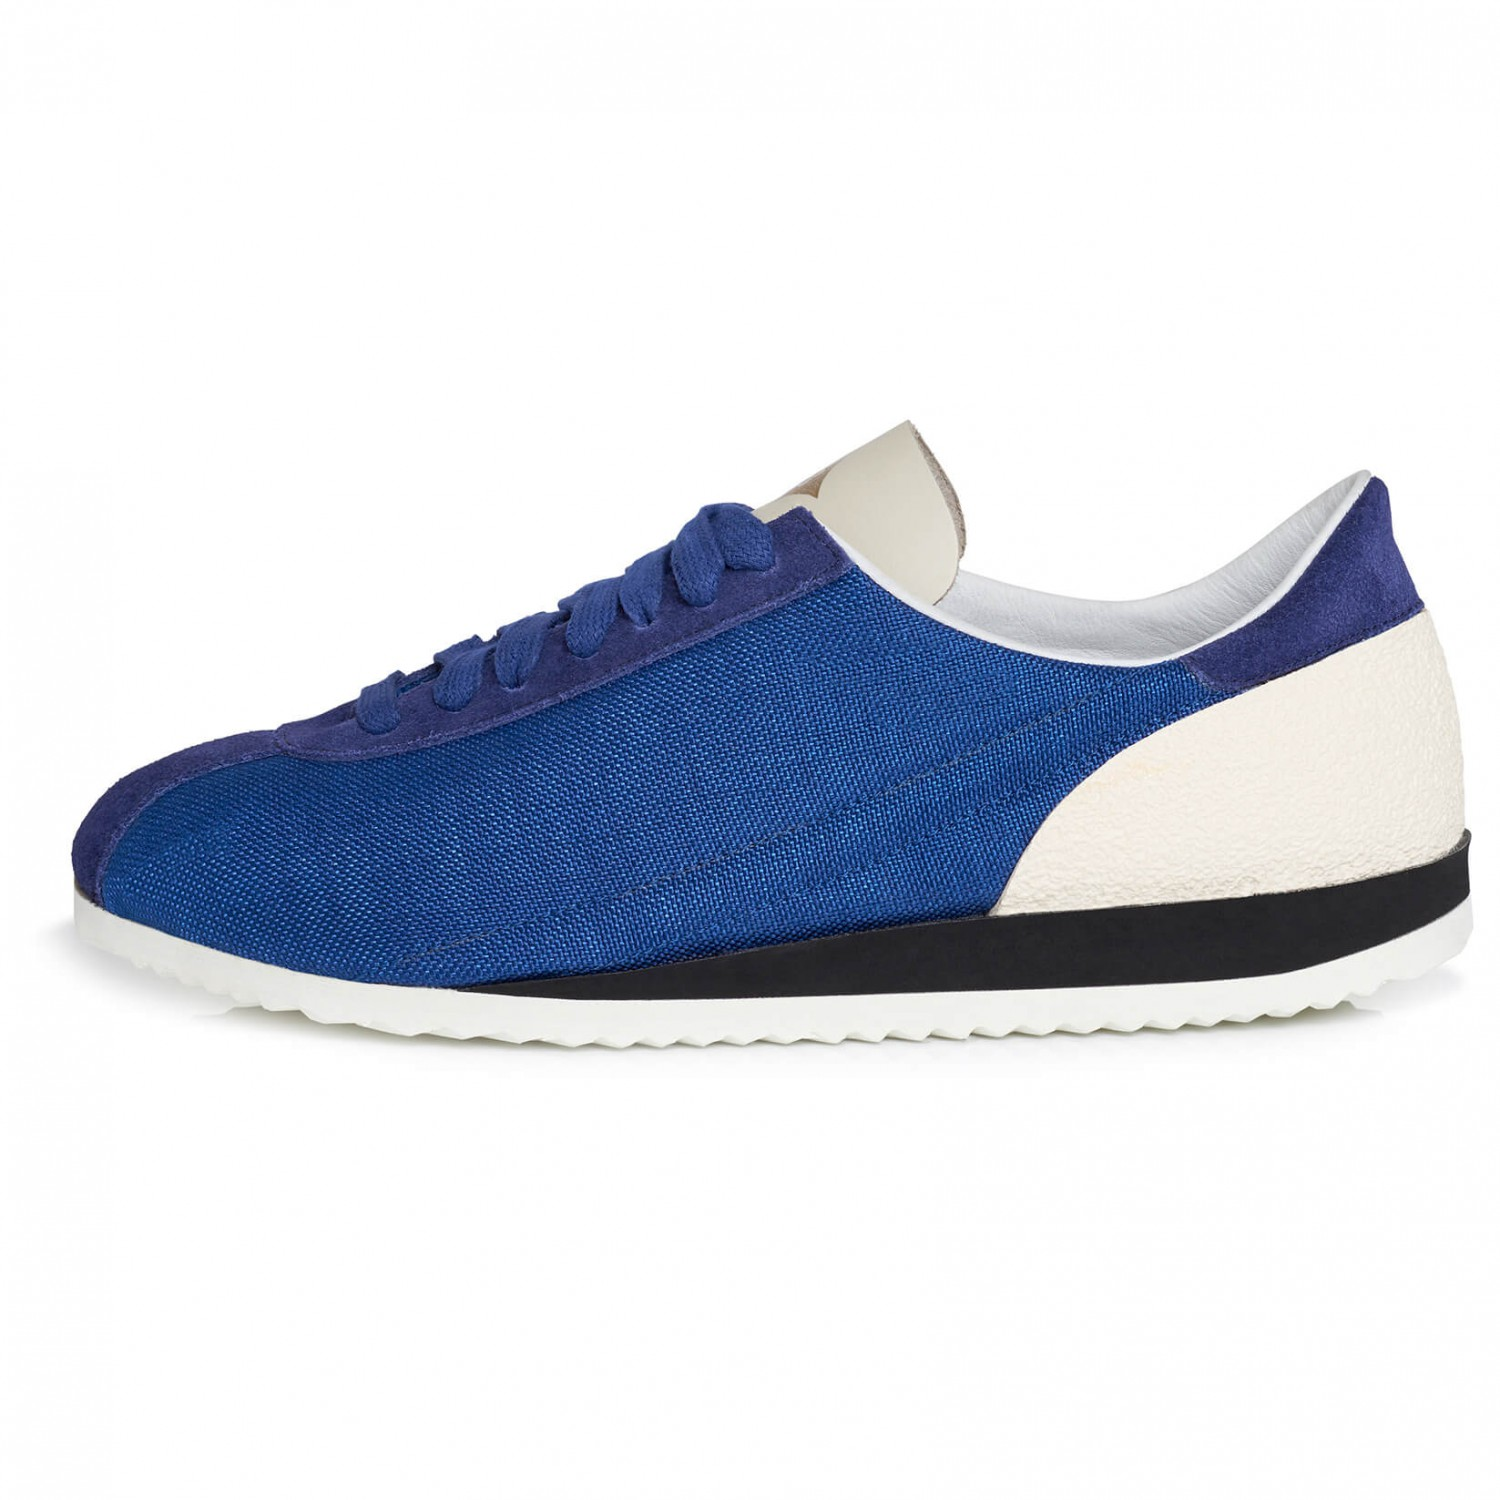 Brütting Diamond-Brand - Intervall Light - Sneaker Blue / Cream